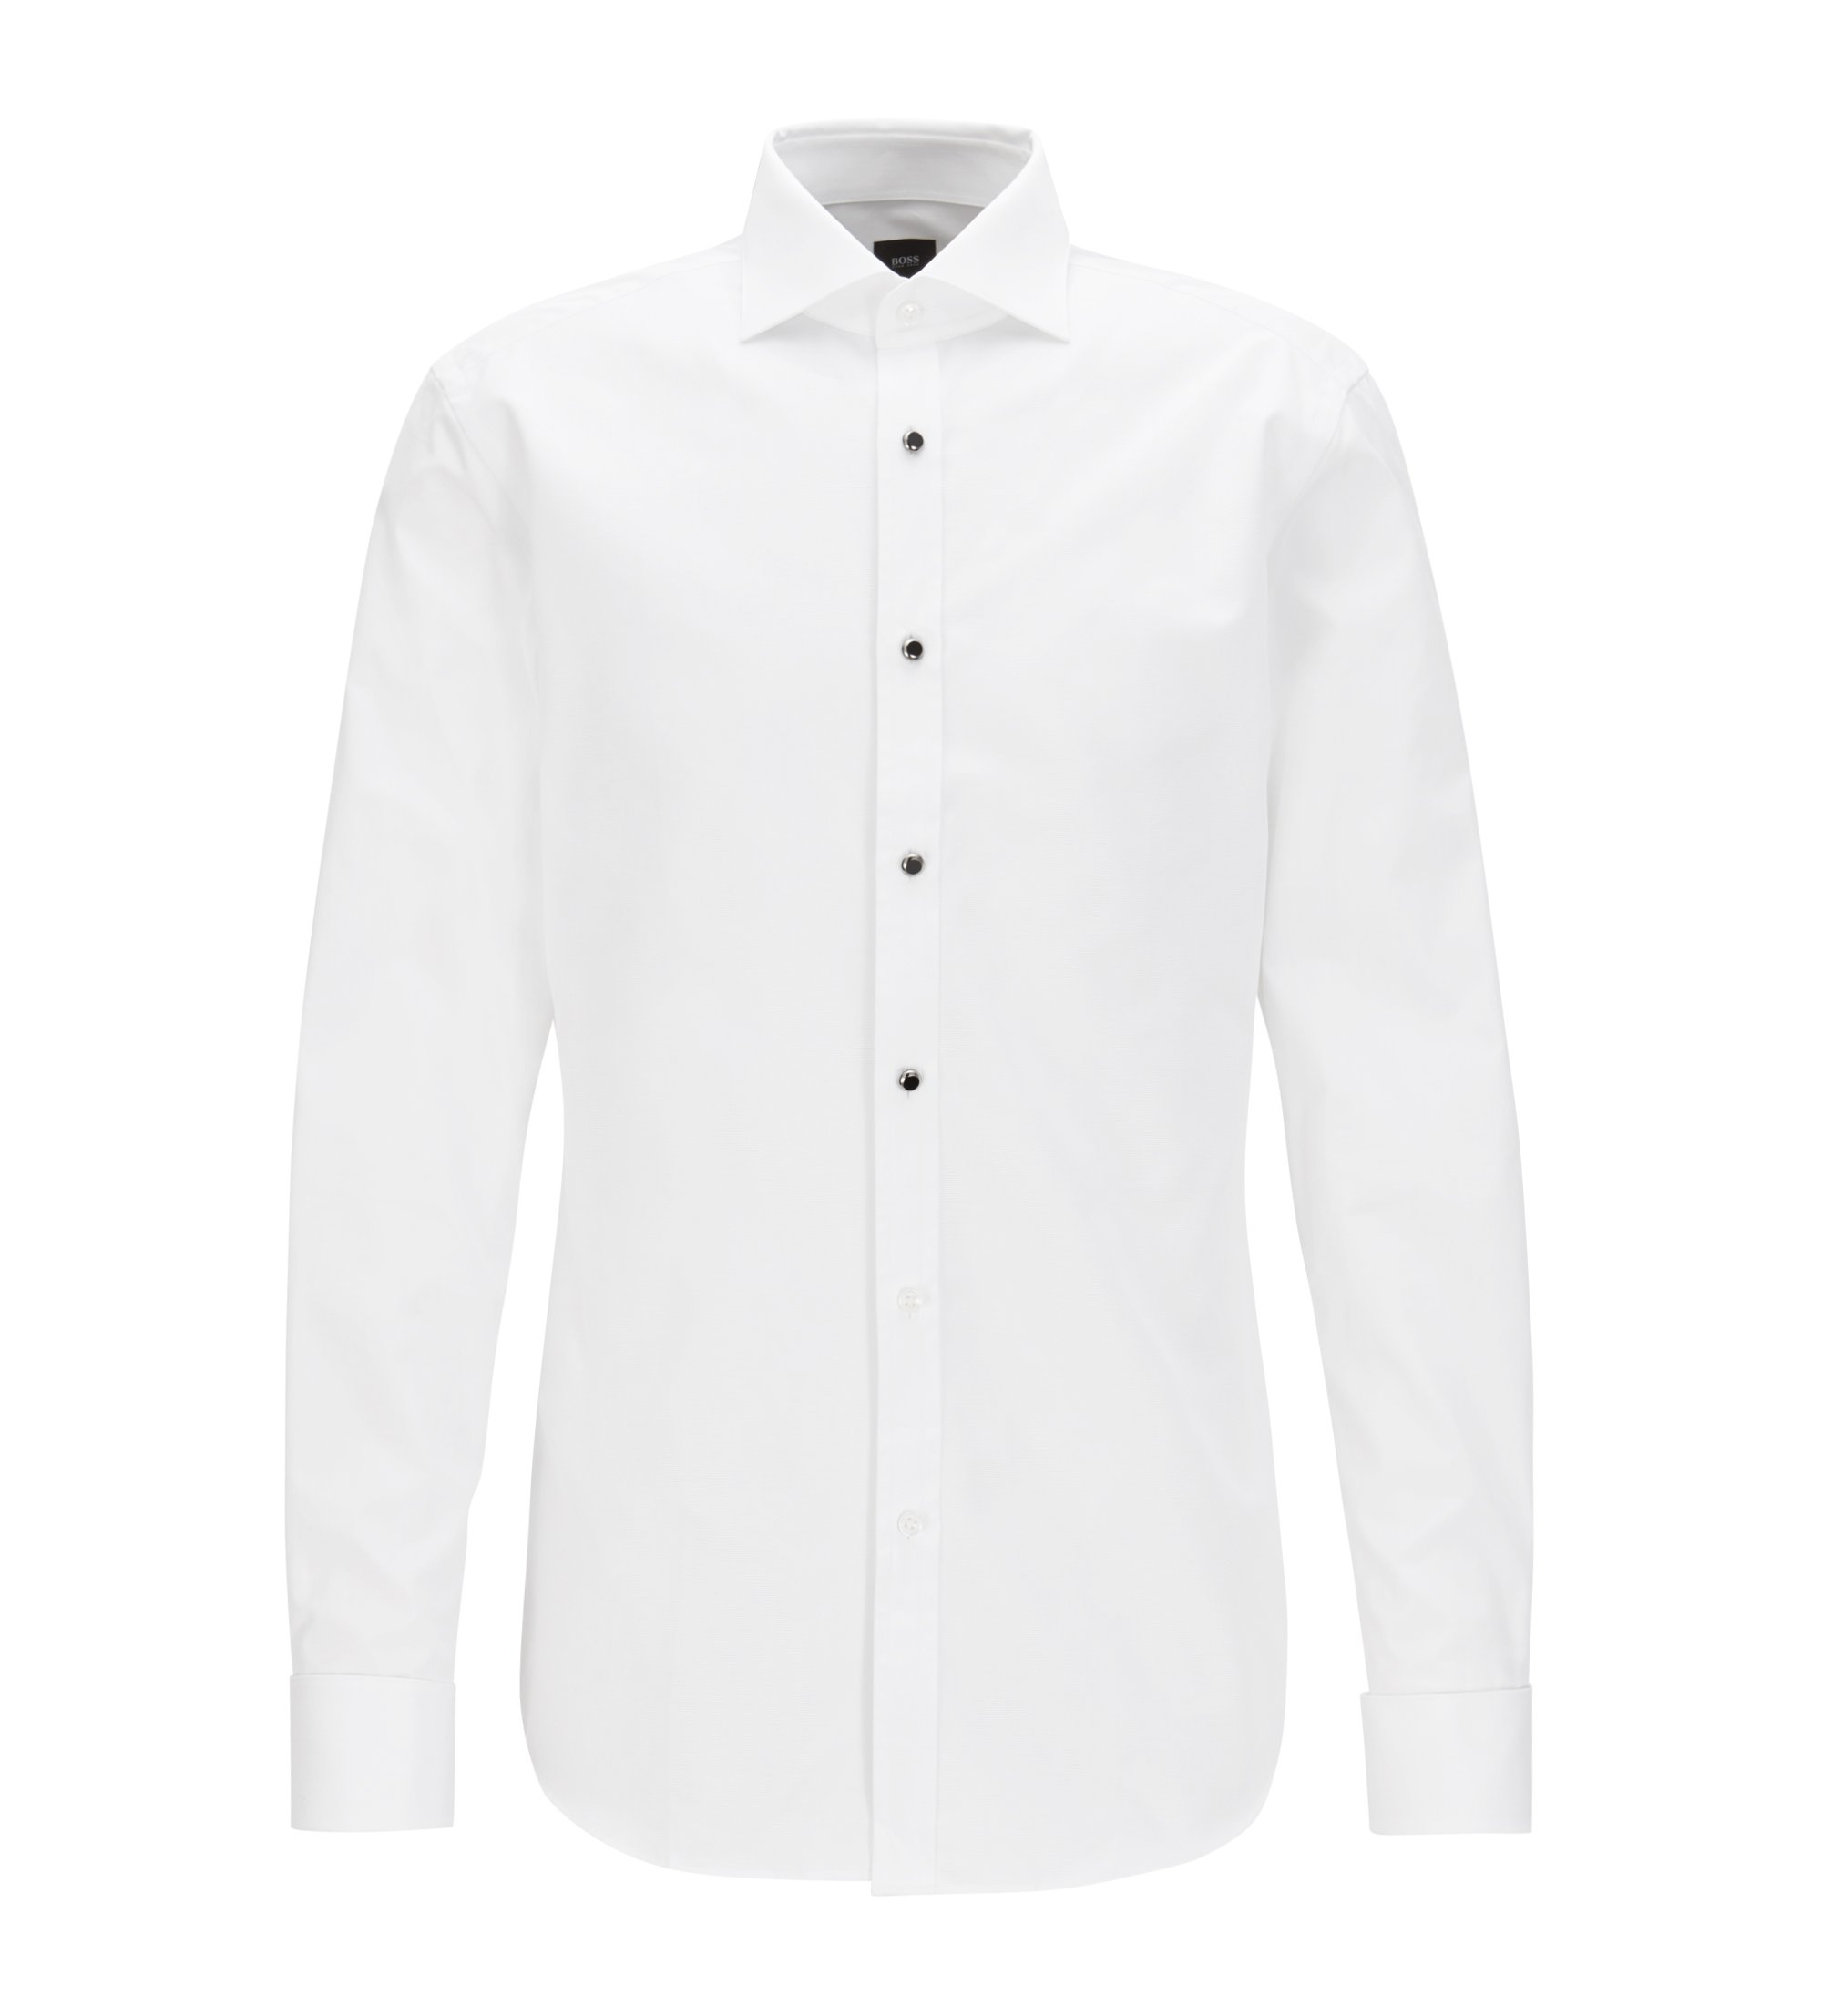 Cotton Dress Shirt, Slim Fit | T-Clayton, White